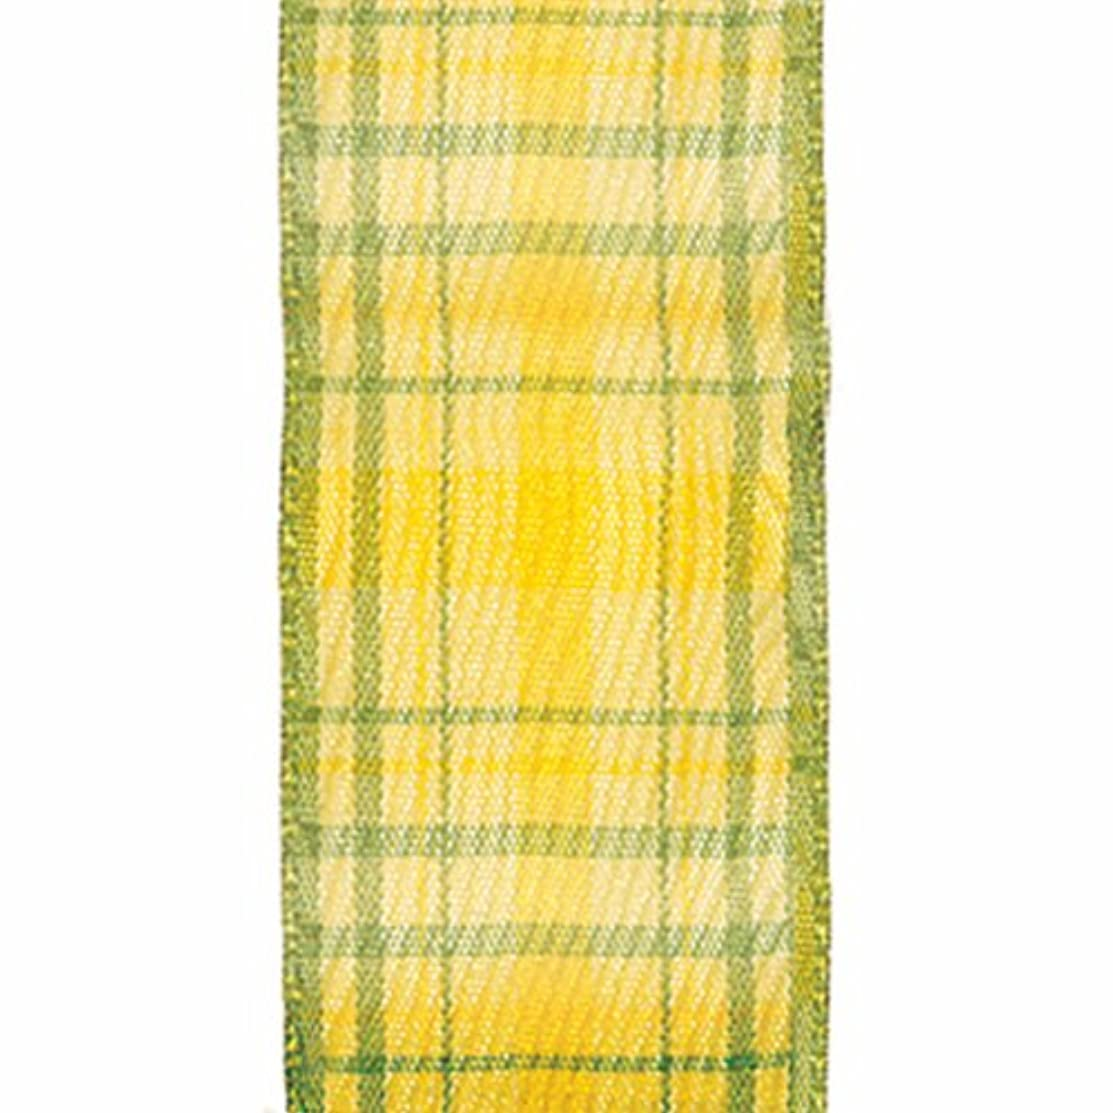 Offray Wired Edge Duncan Craft Ribbon, 1 1/2-Inch x 9-Feet, Yellow & Green